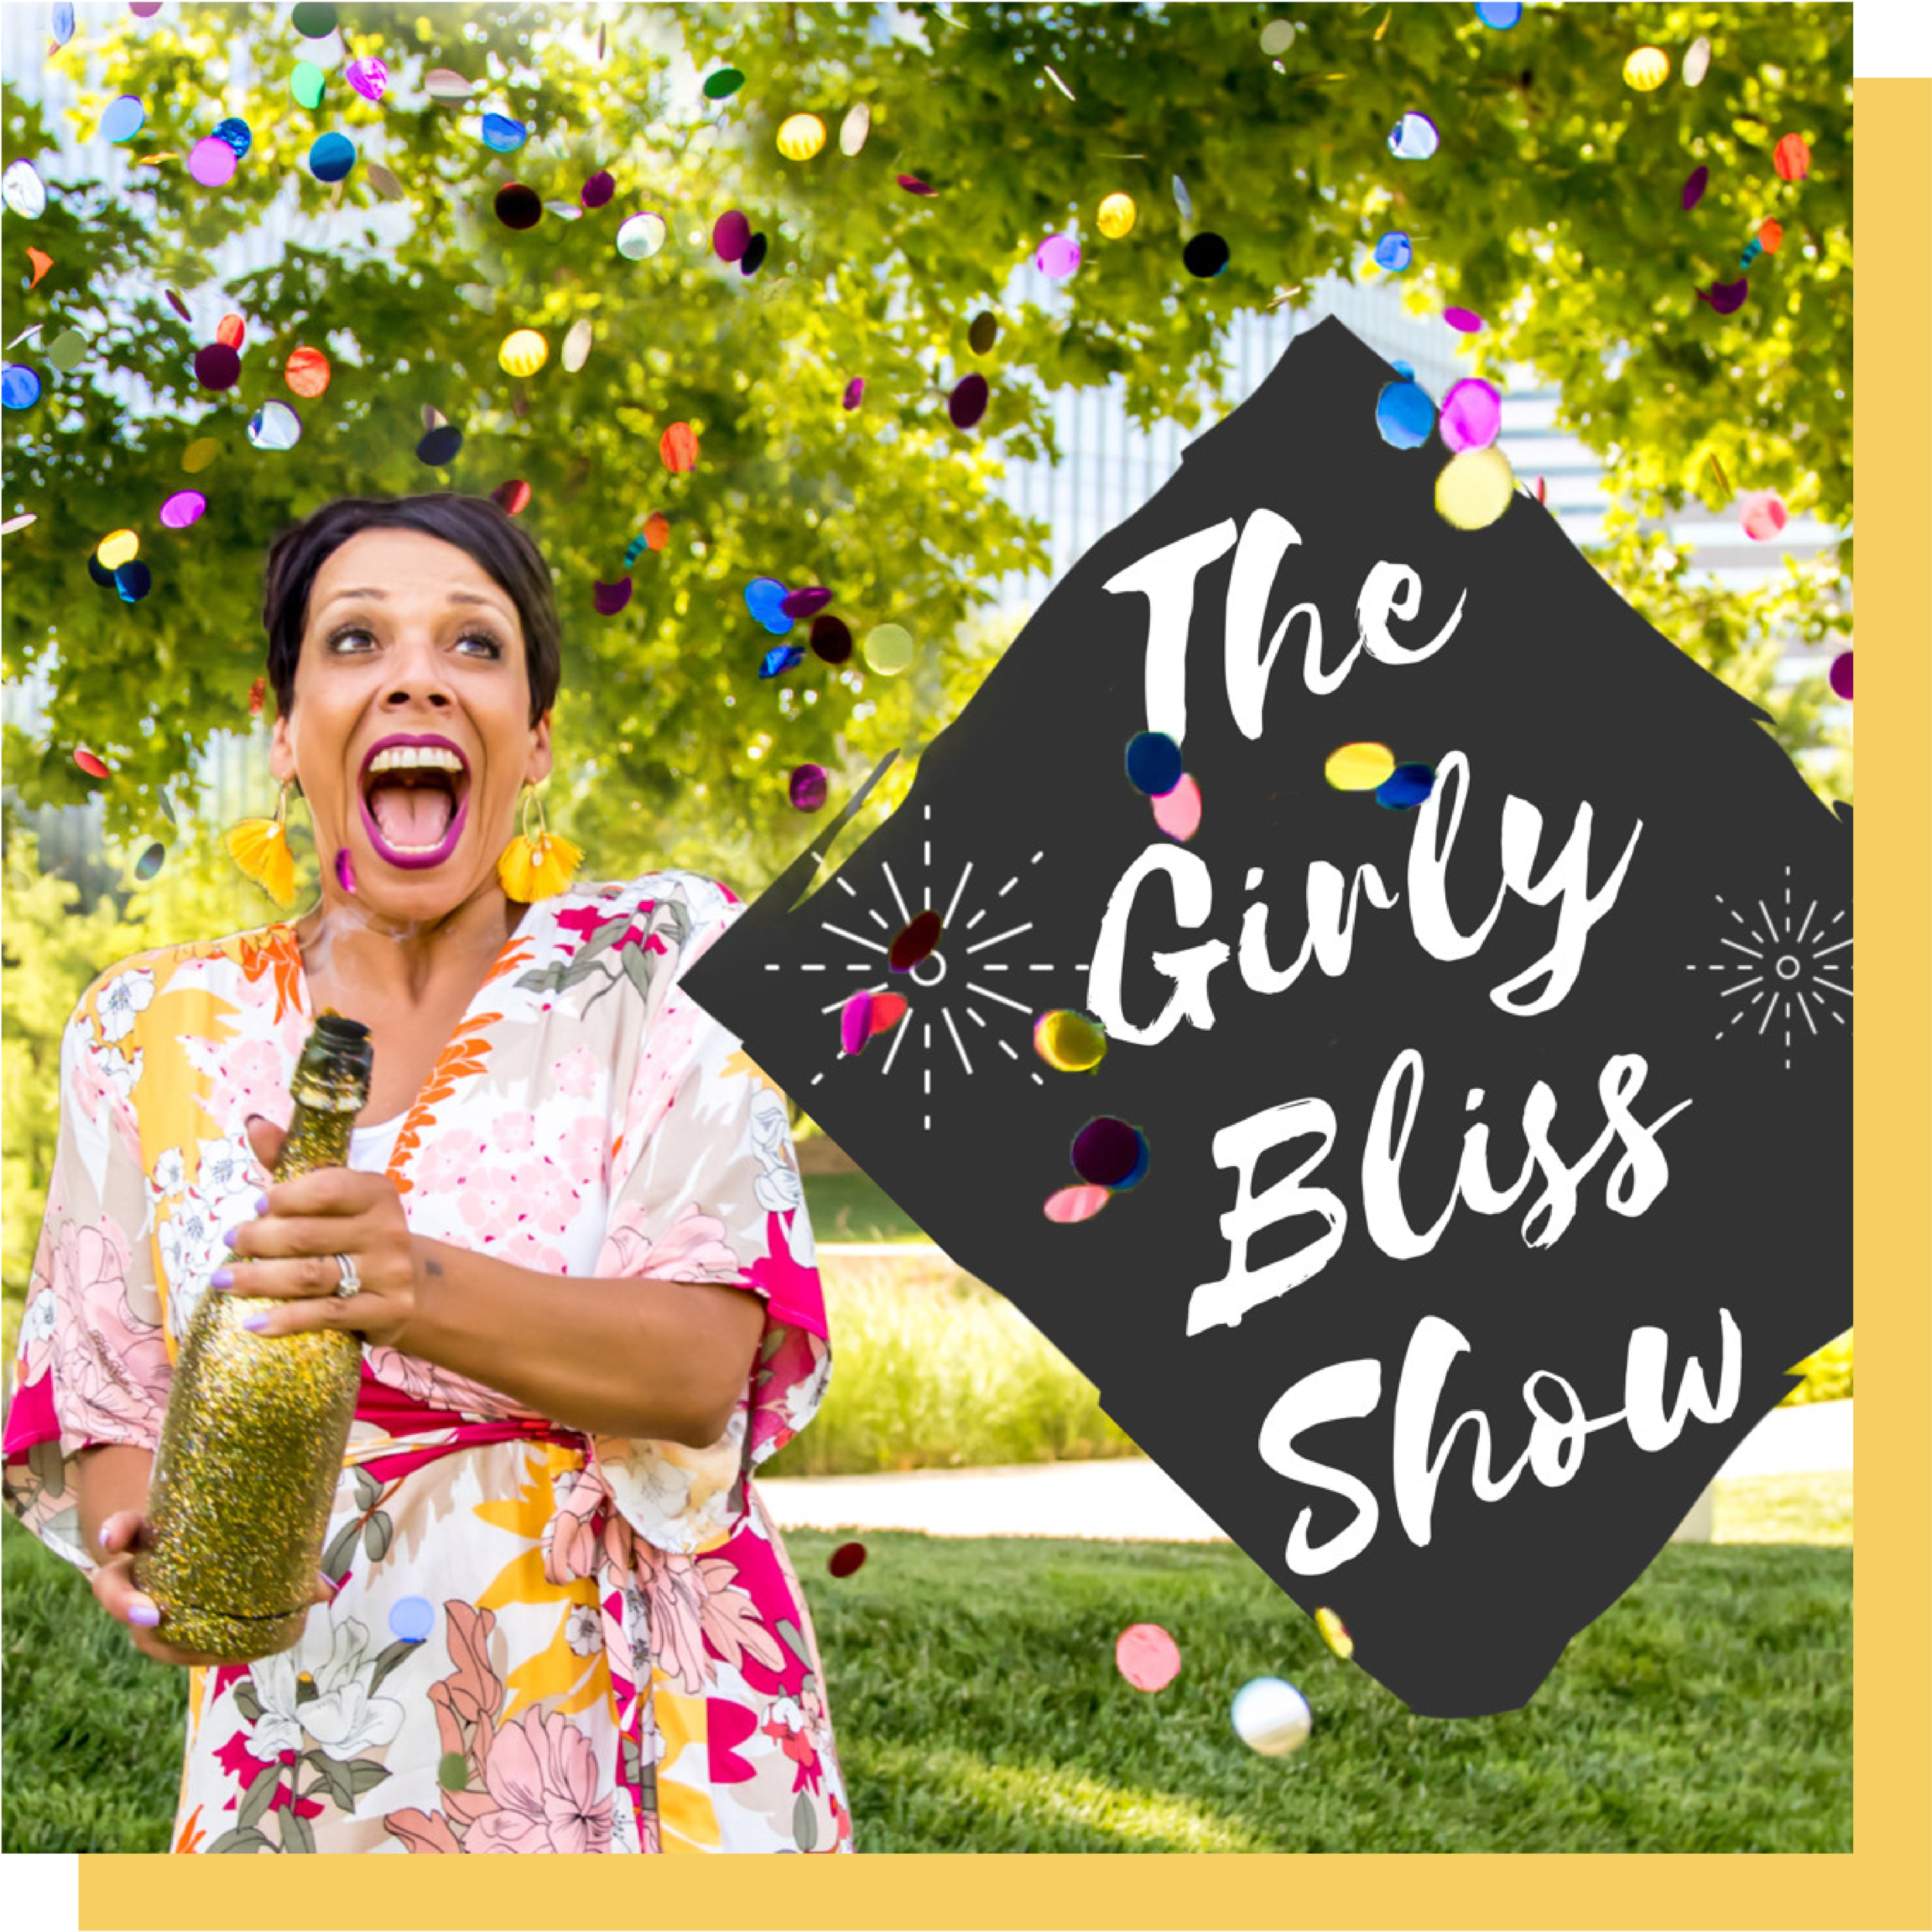 Podcast - The Girly Bliss Show is for women in every stage and season.Every episode is designed to encourage, equip, and empower you to discover and live your best life with mindful practices, truth bombs, and practical tips. Listen, subscribe, and follow along on Facebook and Instagram.